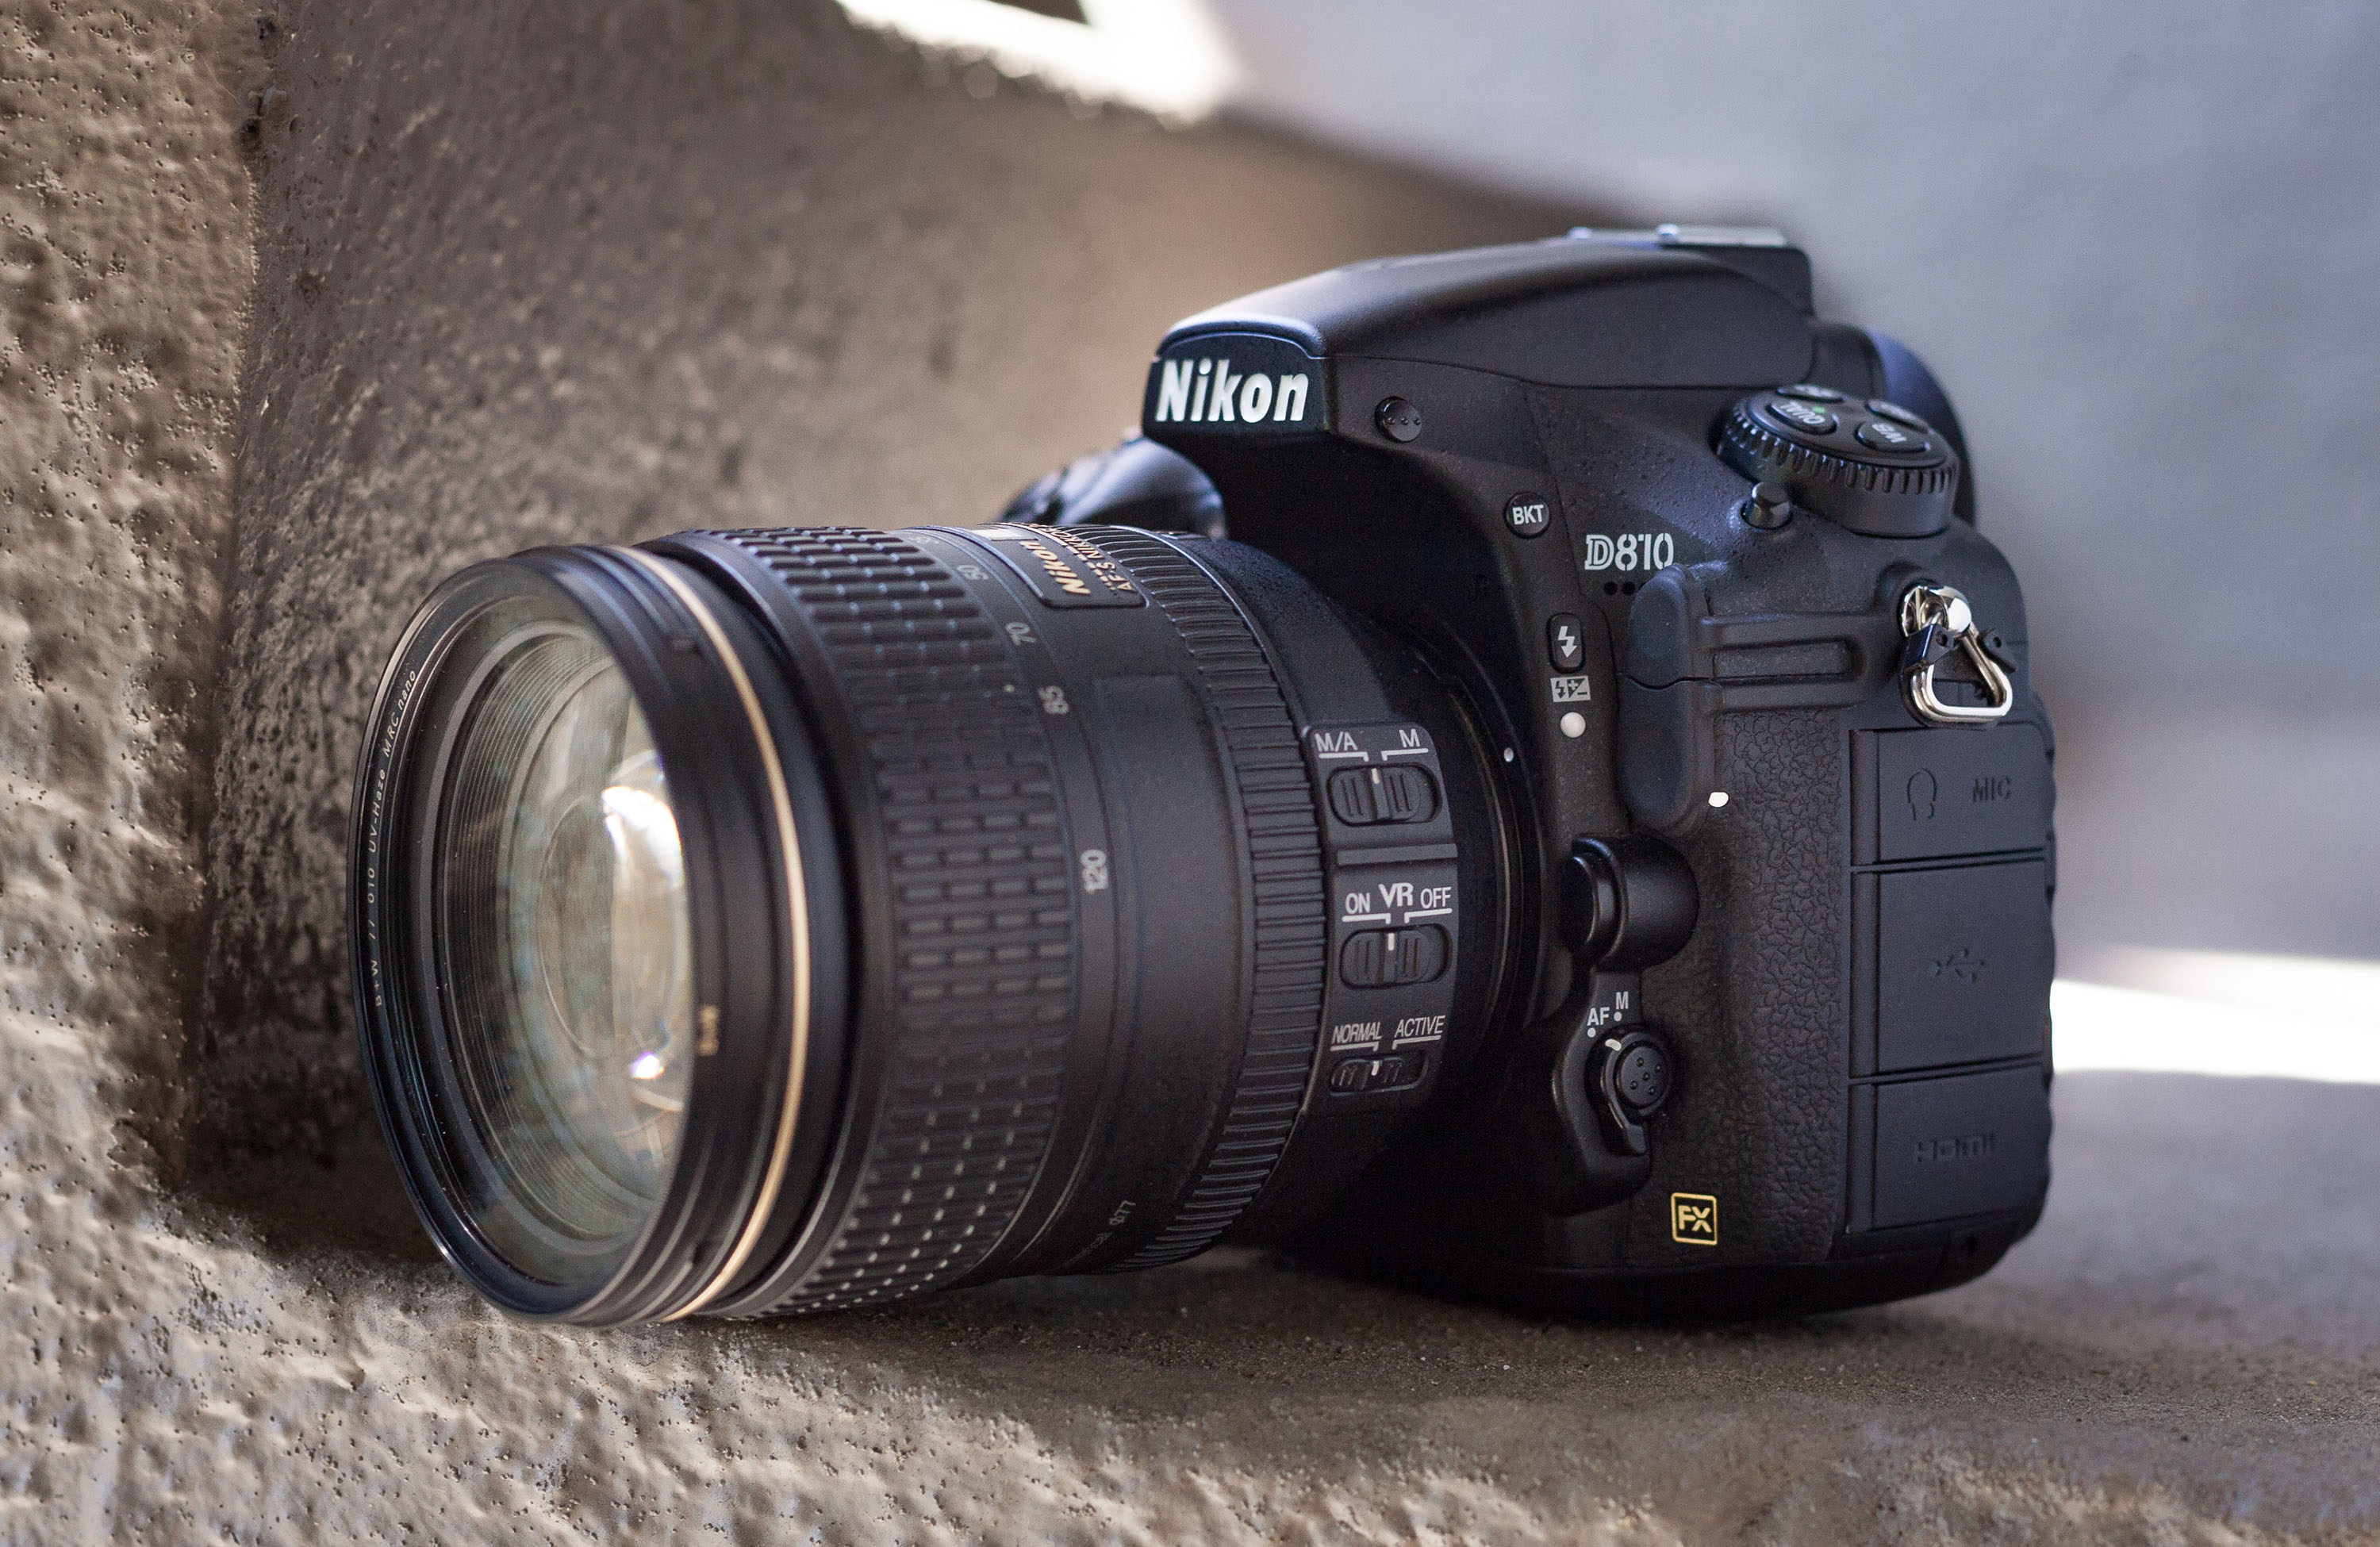 Camera High Quality Dslr Camera benchmark performance nikon d810 review digital photography two years after shook up the high end dslr market with 36mp d800 and d800e it consolidated 800 series relea